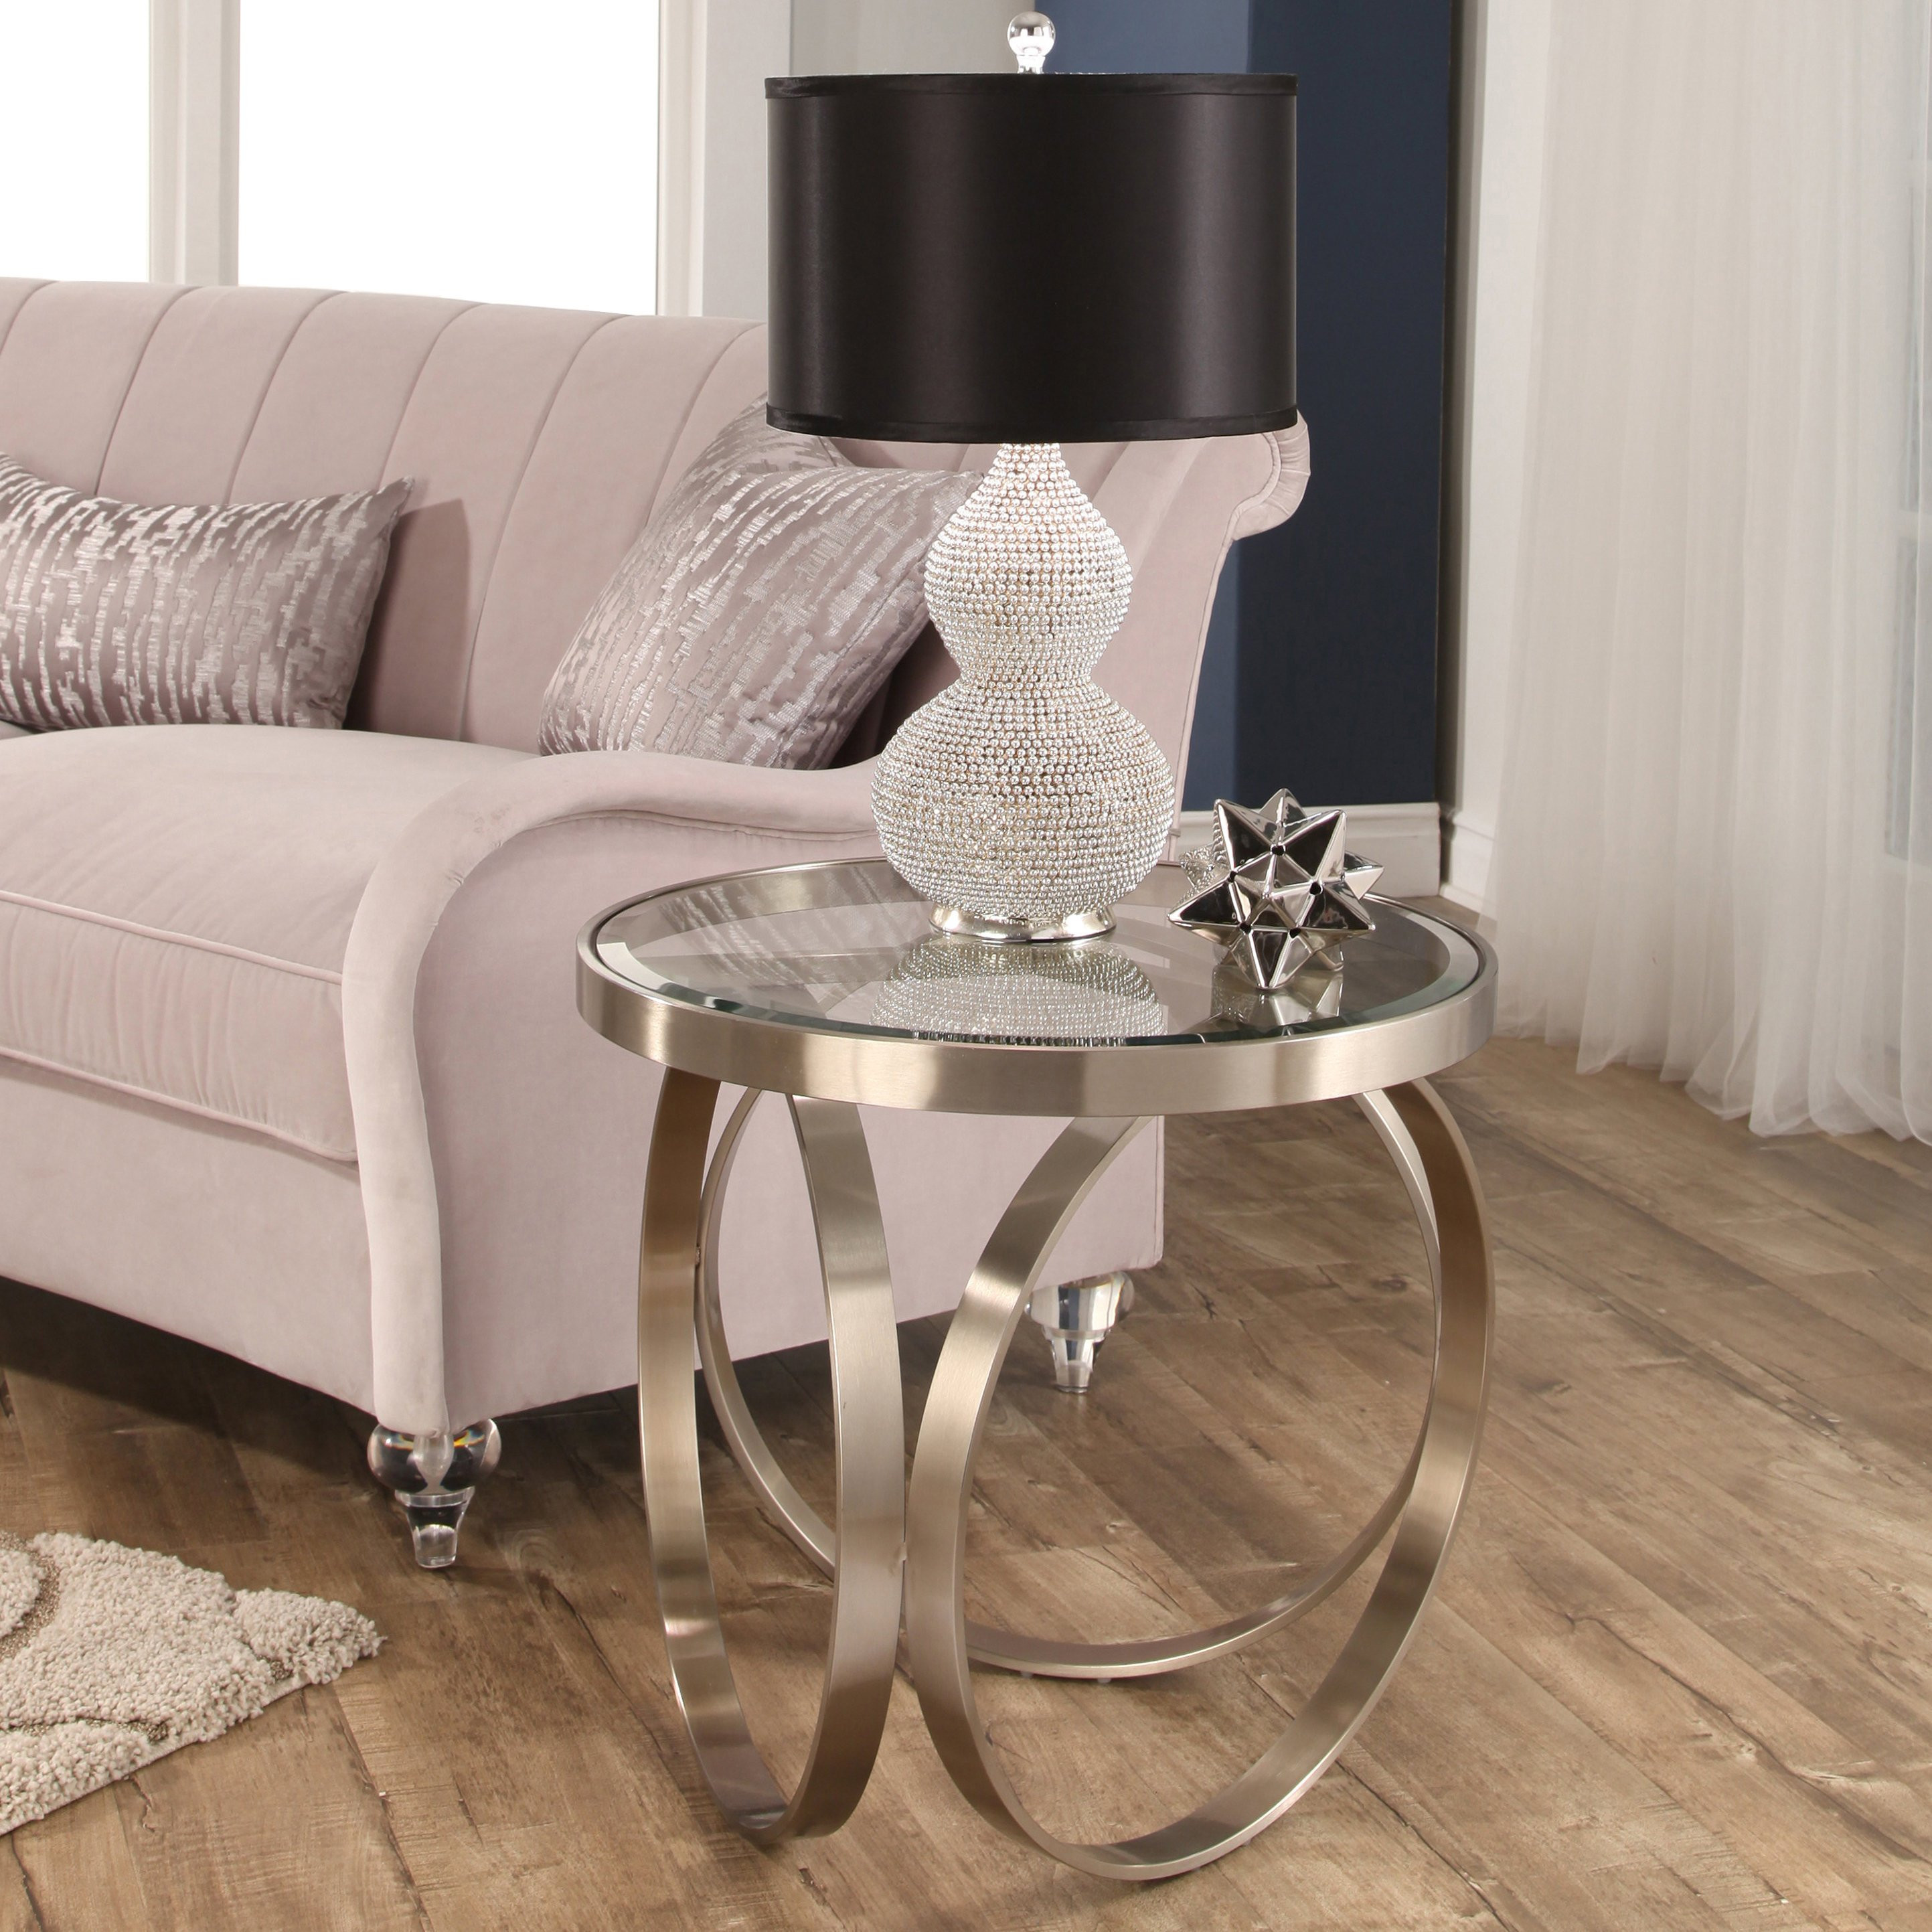 stainless steel floor vase of shop abbyson pearl silver stainless steel end table on sale free with regard to shop abbyson pearl silver stainless steel end table on sale free shipping today overstock com 15069914